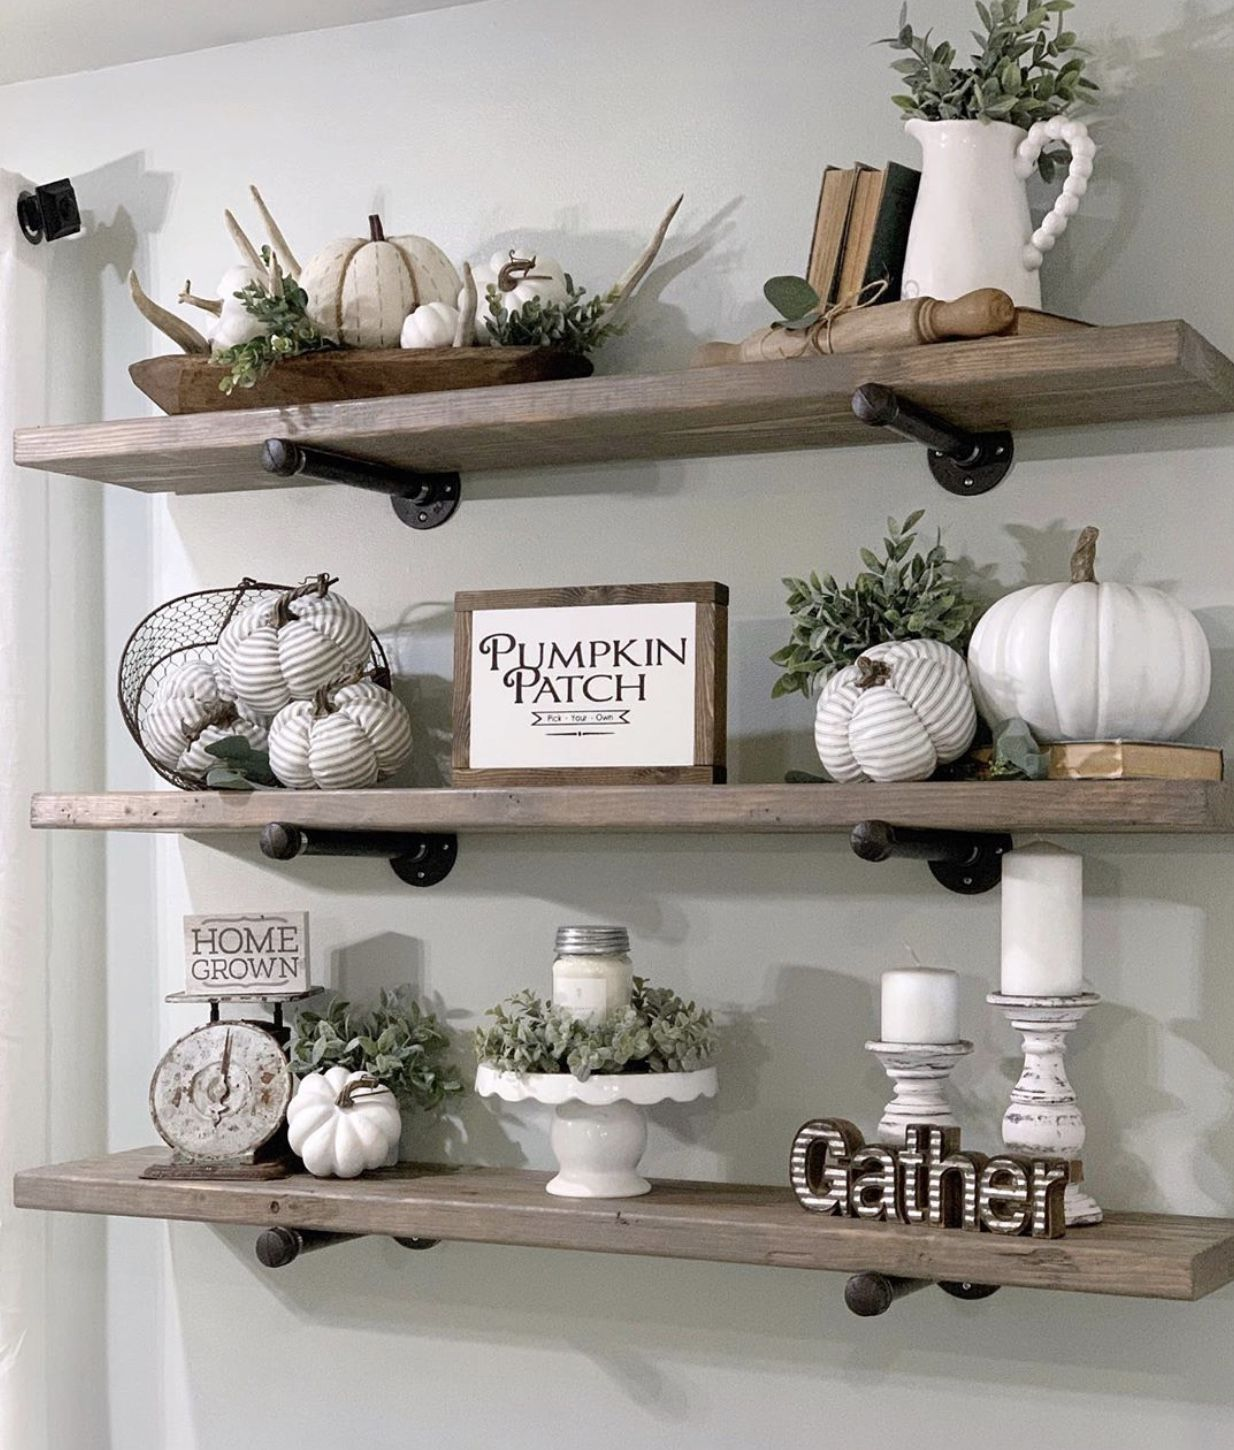 41 Gorgeous Fall Decor Ideas For Your Home | Chaylor & Mads